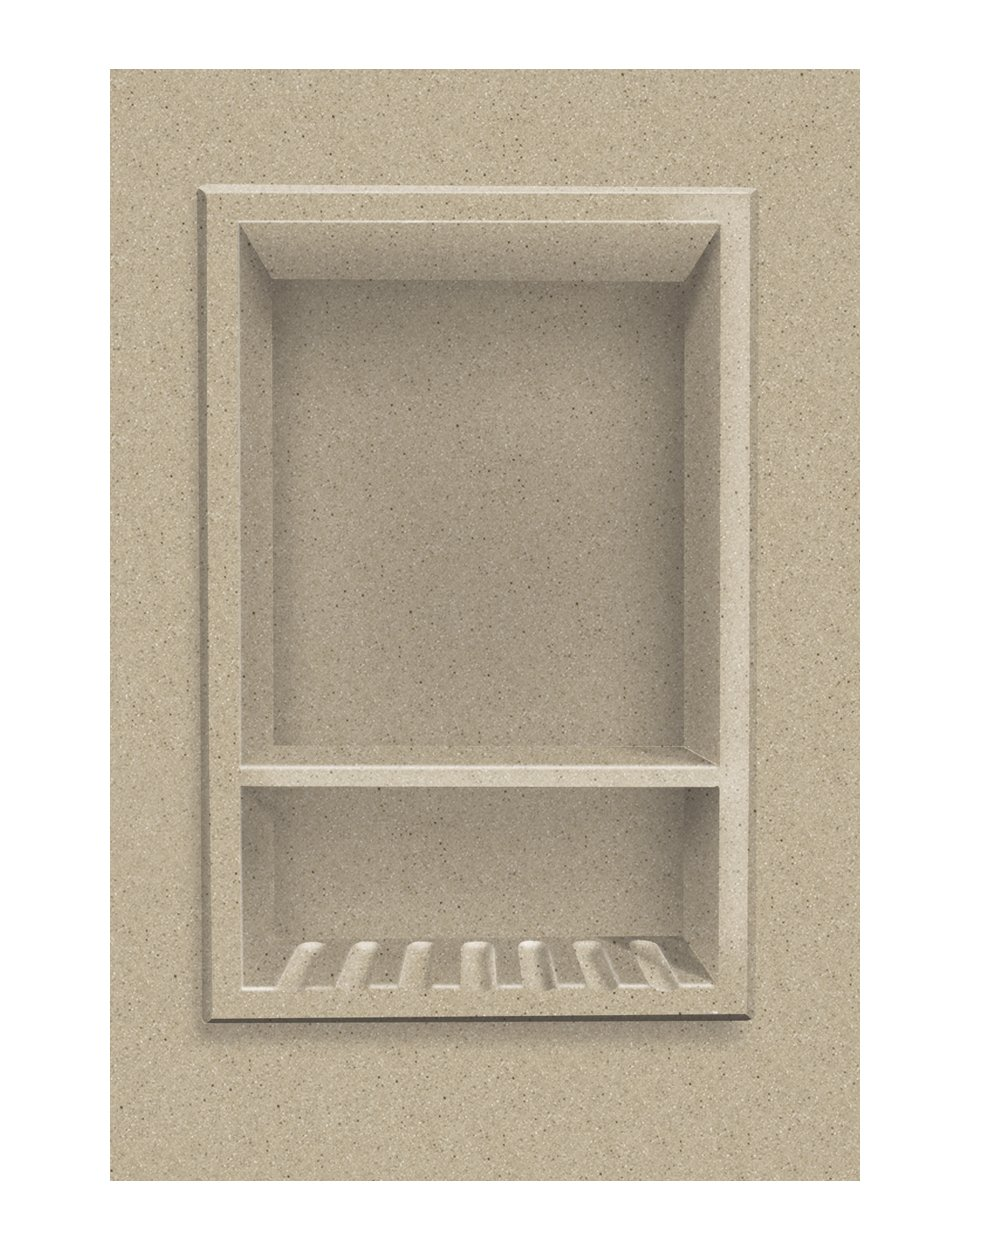 Transolid ACCESS0003-B2 Decor 10 x 15-Inch Recessed Shampoo Caddy, Matrix Sand by Transolid